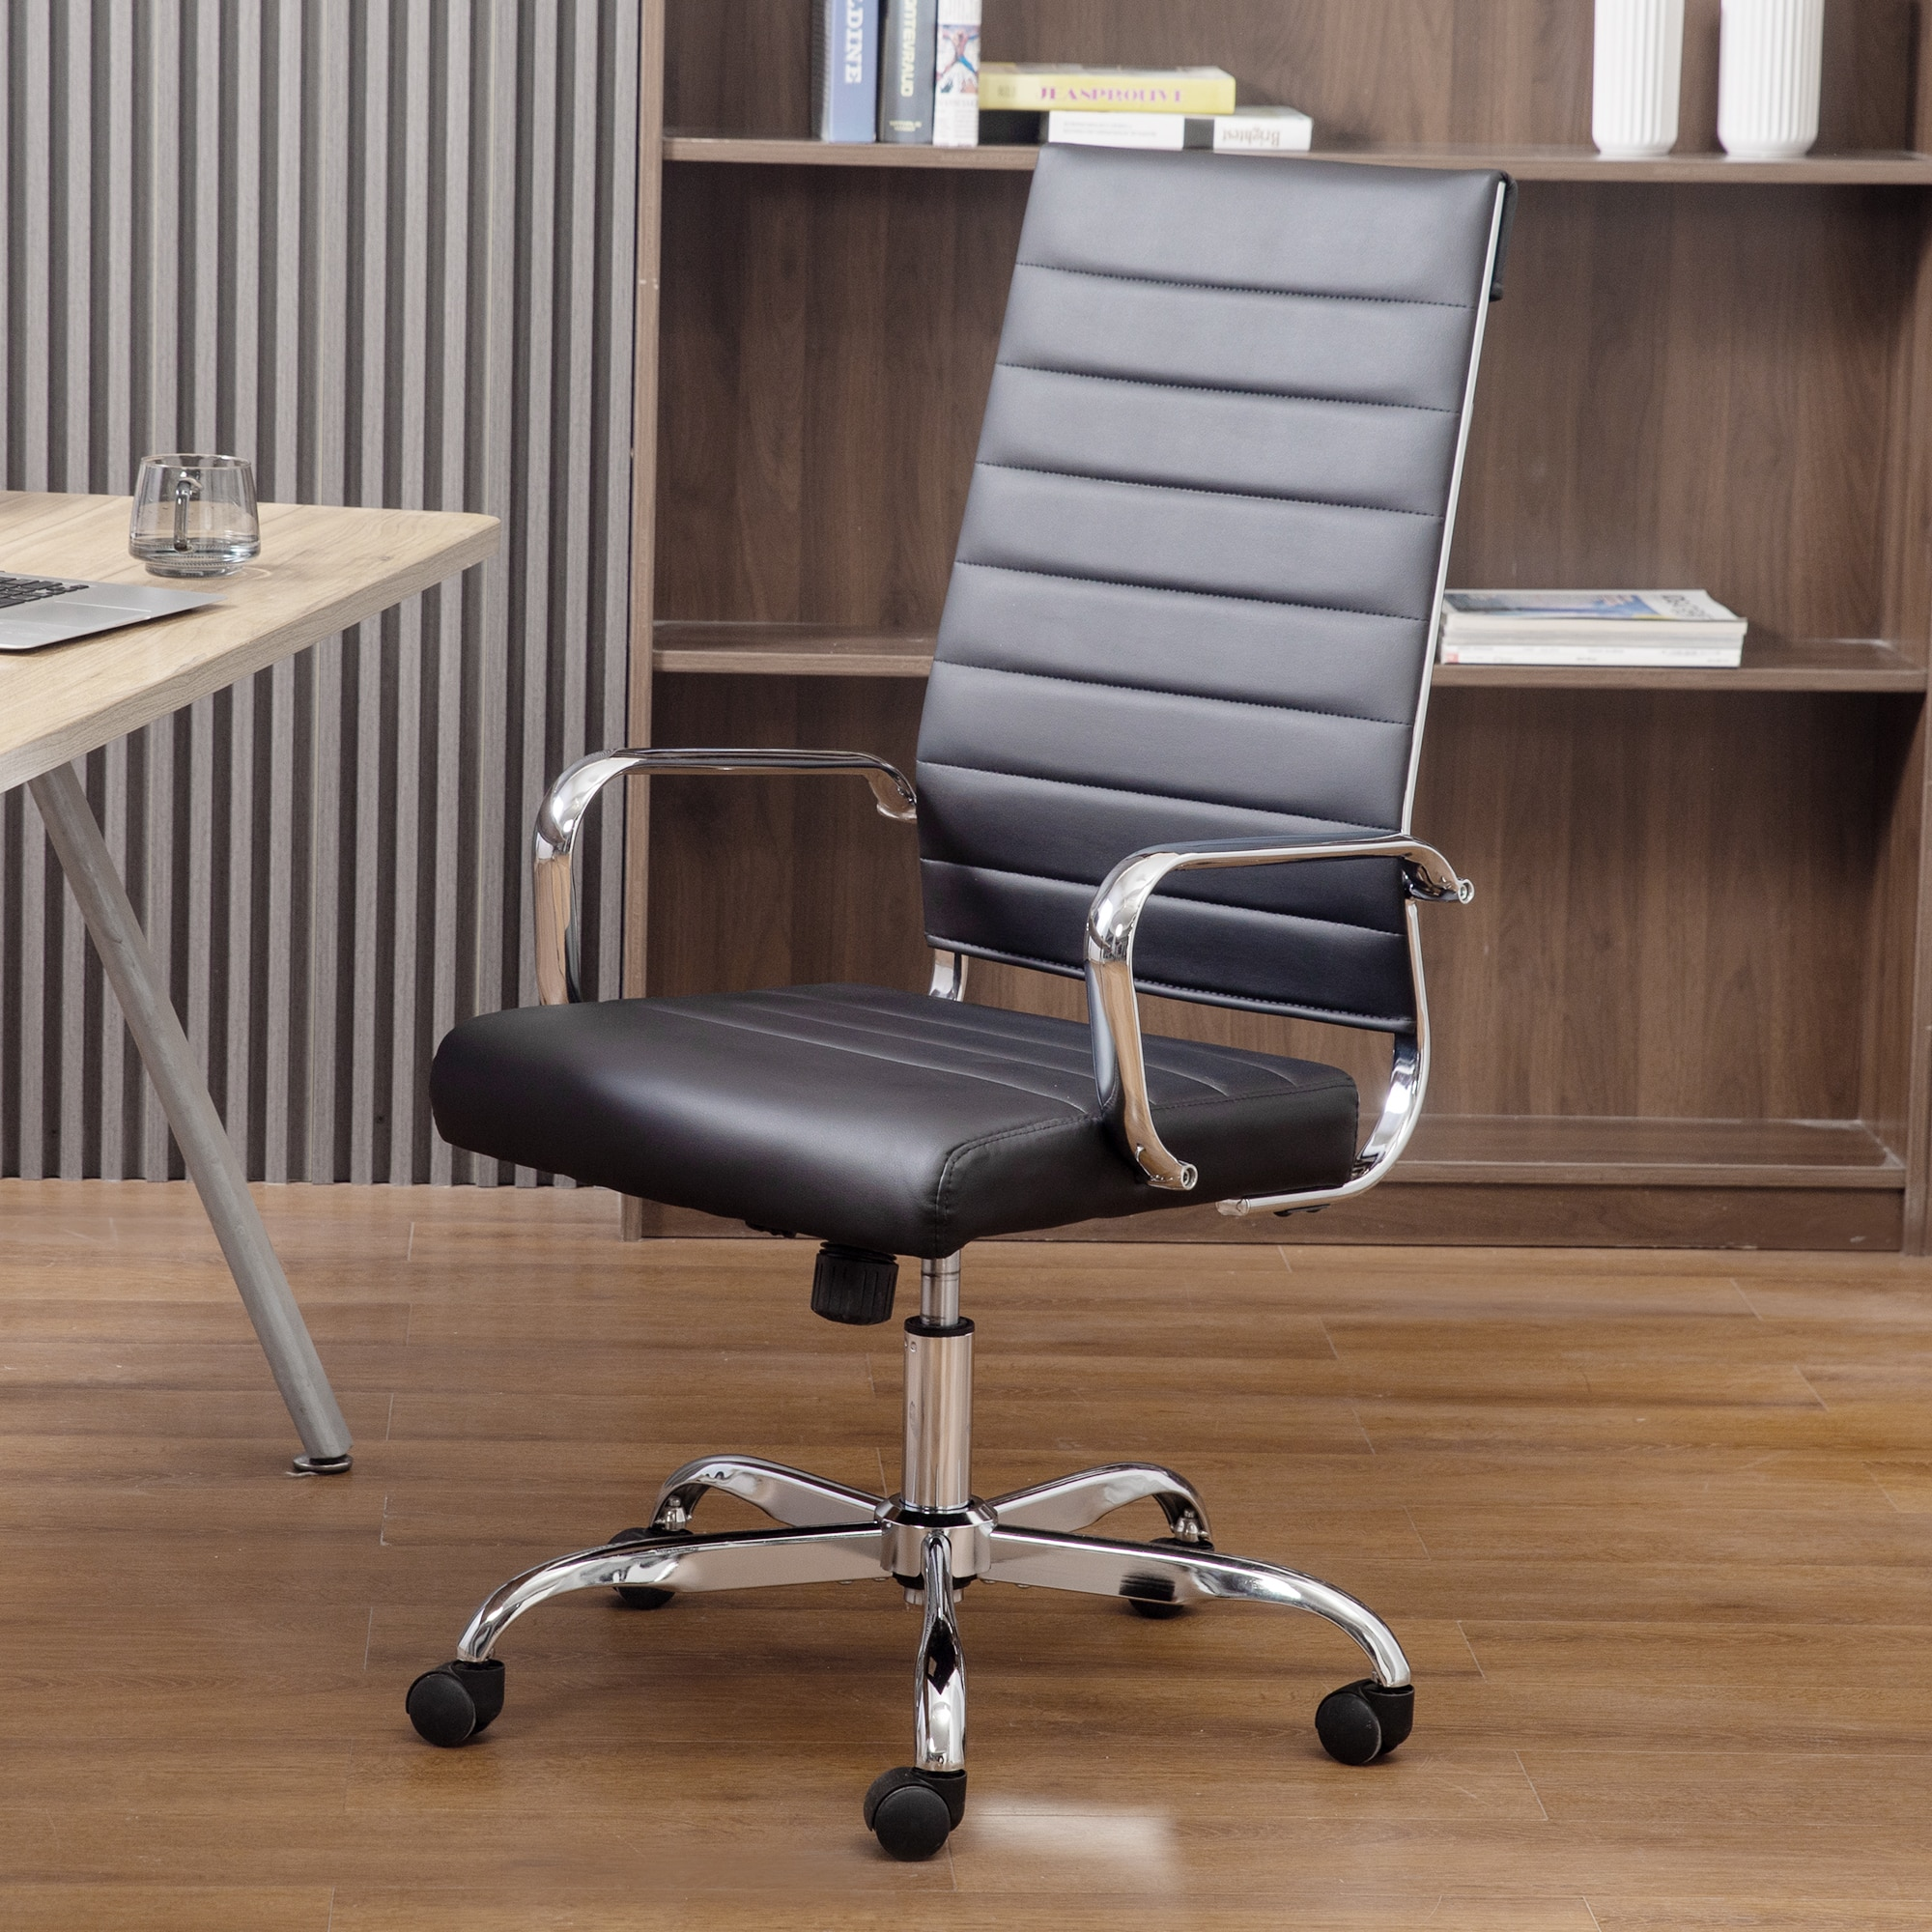 homall ribbed office chair mid back pu leather executive conference desk chair adjustable swivel chair with comfortable arms GOSKEY Ribbed Office Chair High Back PU Leather Executive Conference Chair Adjustable Swivel Chair with Arms